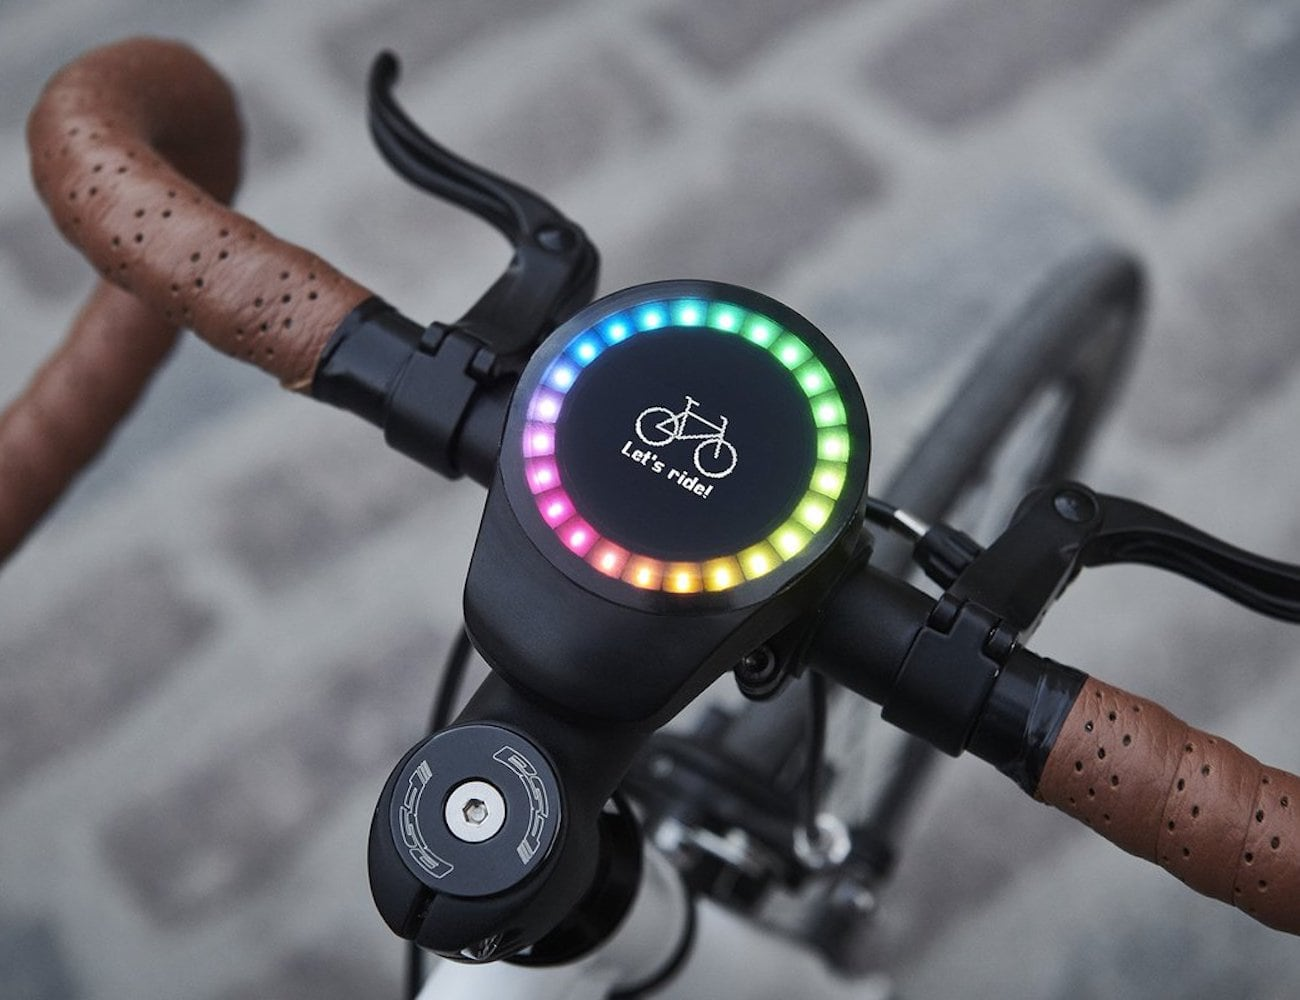 SmartHalo 2 Smart Biking Device helps you easily navigate you to your destination